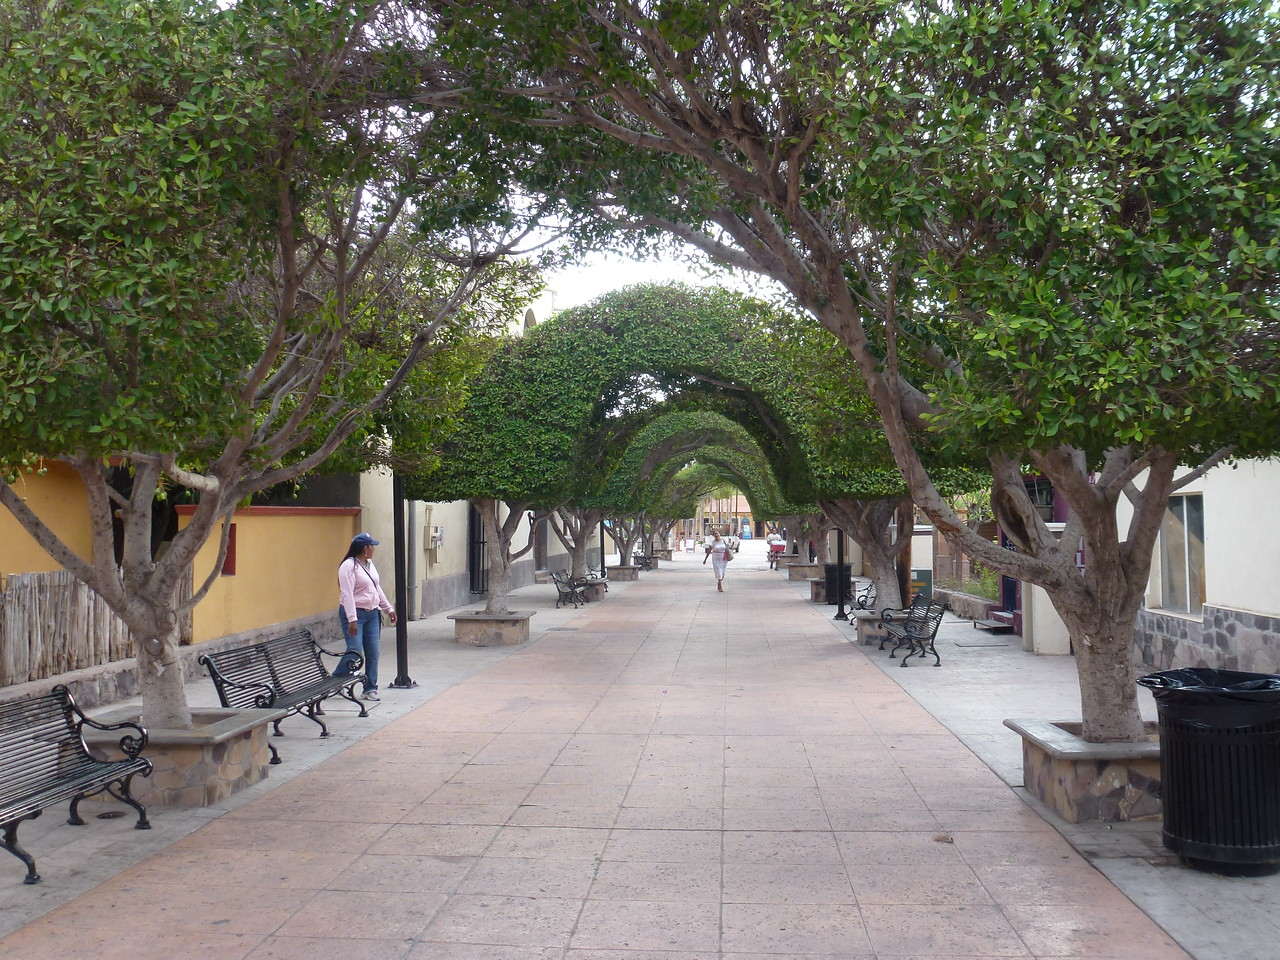 Plaza surrounding the mission <br /> <br /> Wonder how many years they have trimming these trees , like this.......